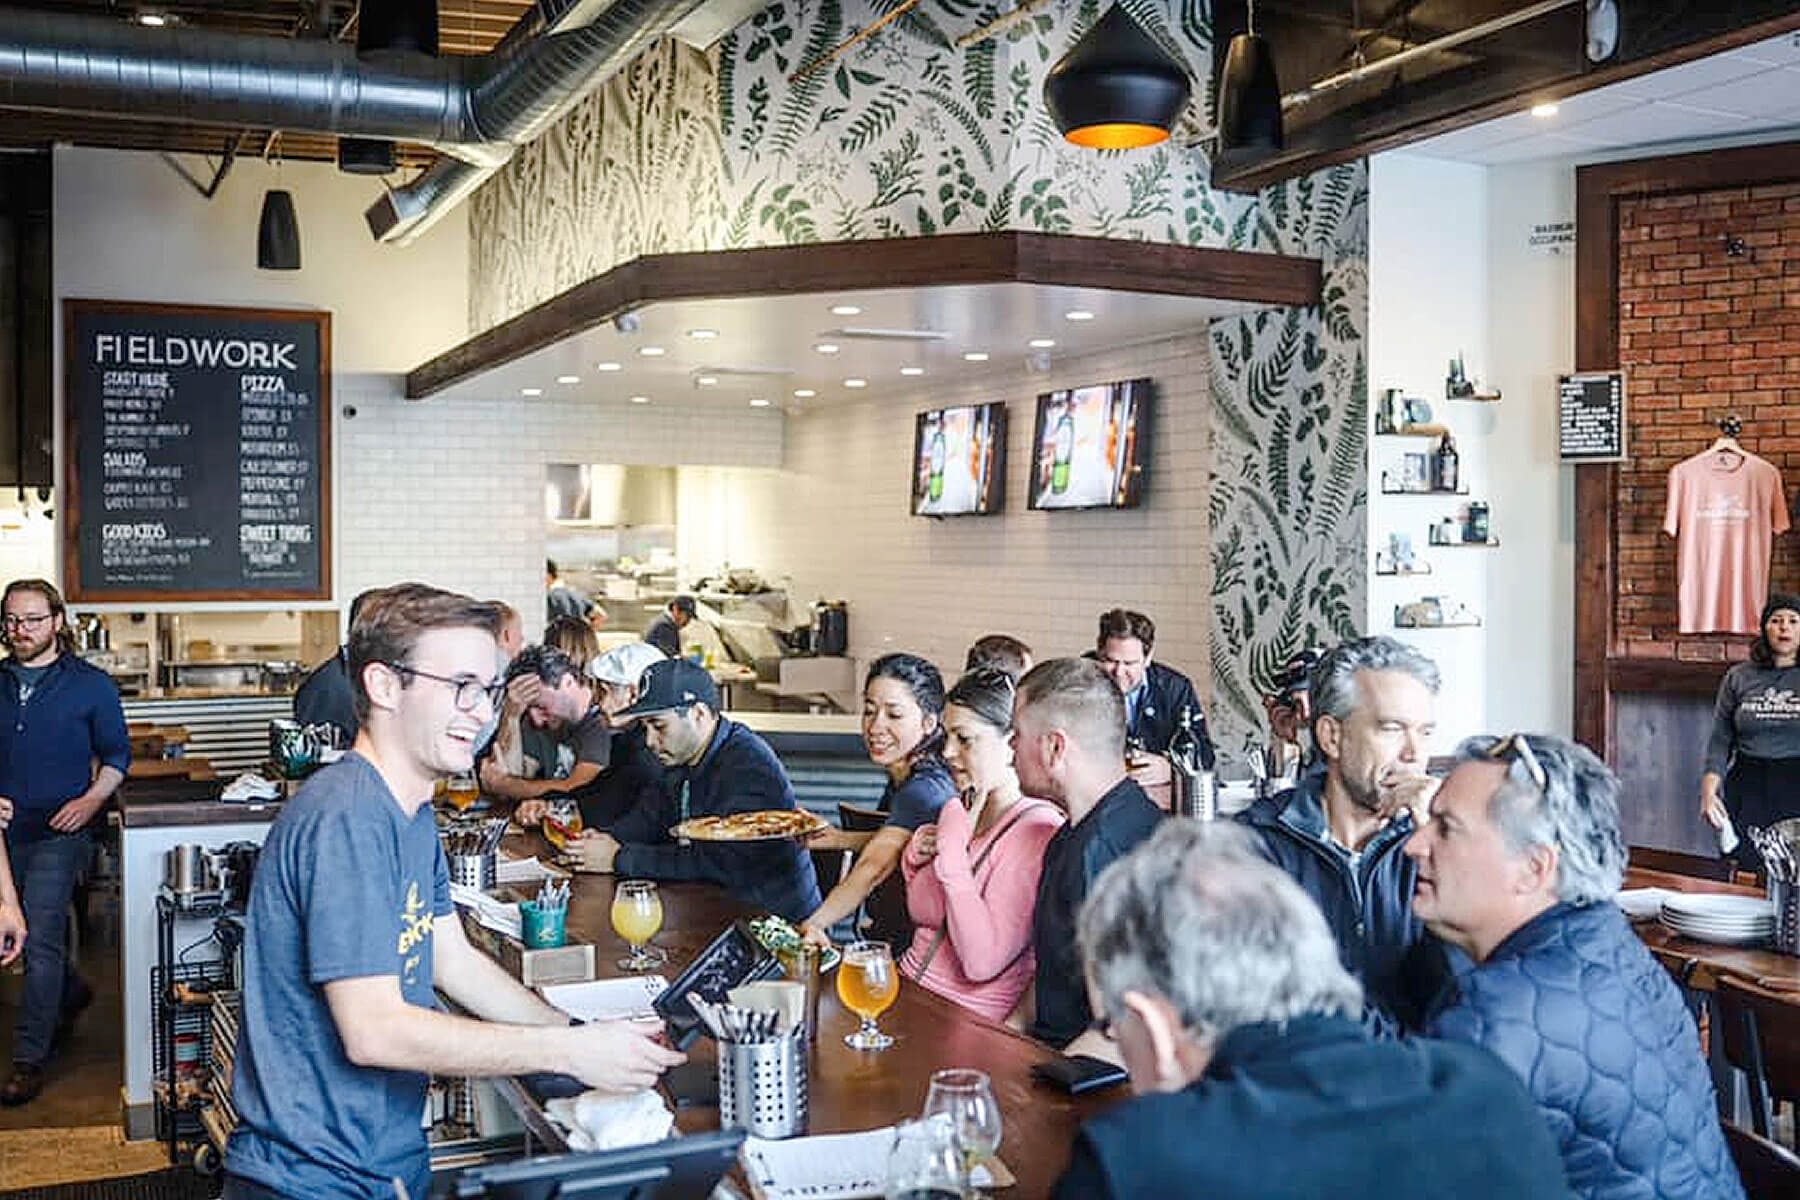 Patrons enjoy food and beer in the taproom at Fieldwork Brewing Company in Corte Madera, California